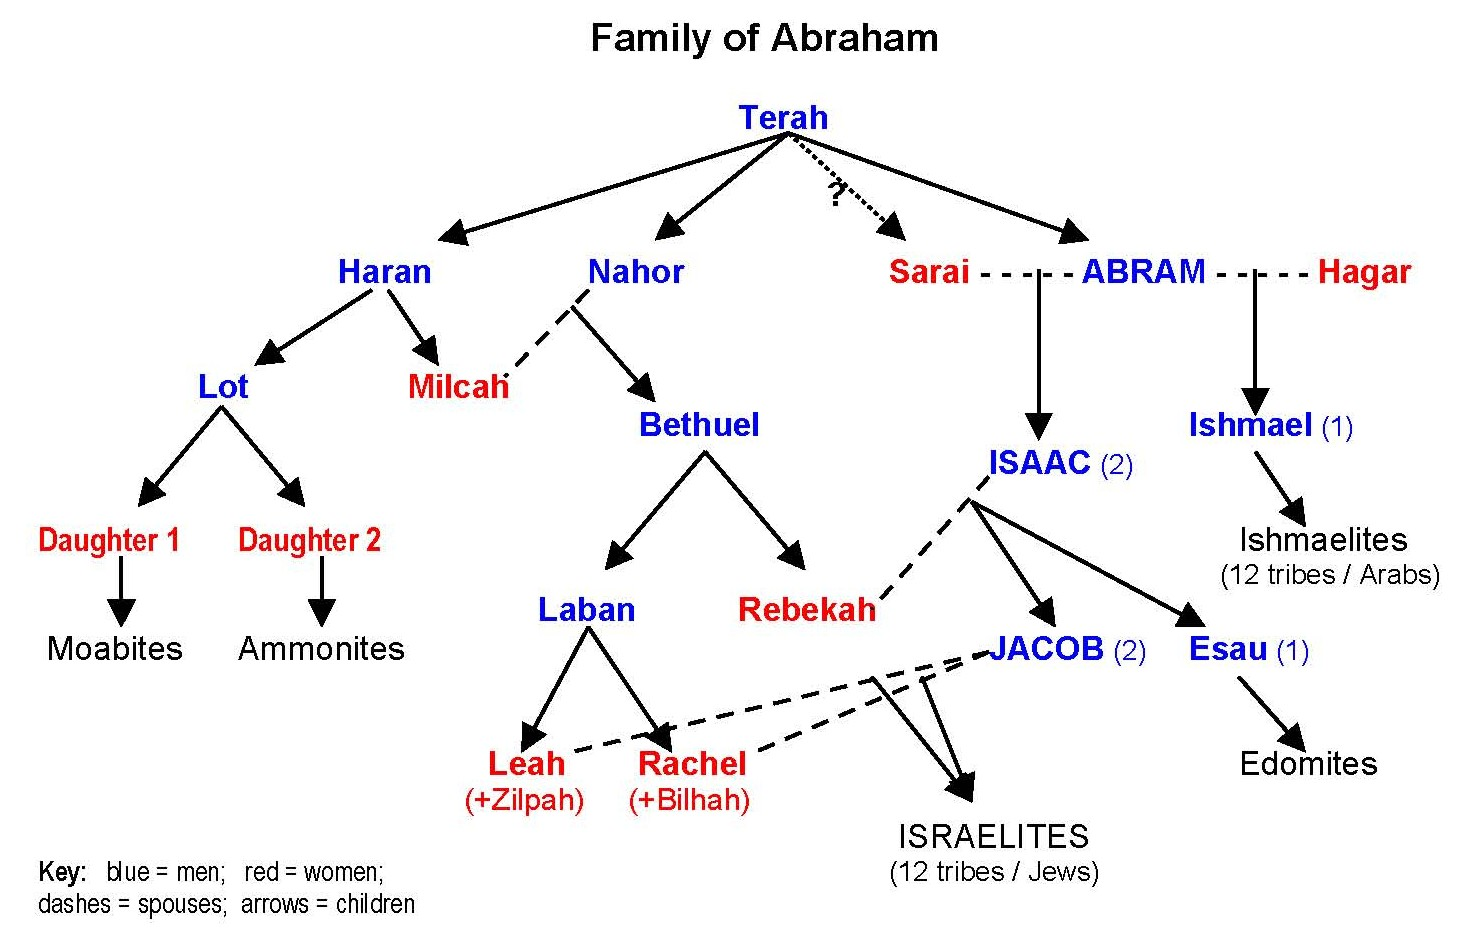 the life of abraham the son of terah From noah, to shem, to eber, the hebrew, to terah, the father of abraham from   and terah took abram his son, and lot the son of haran, his son's son, and sarai   died in charan at the age of 205, there was 135 more years of terah's life.